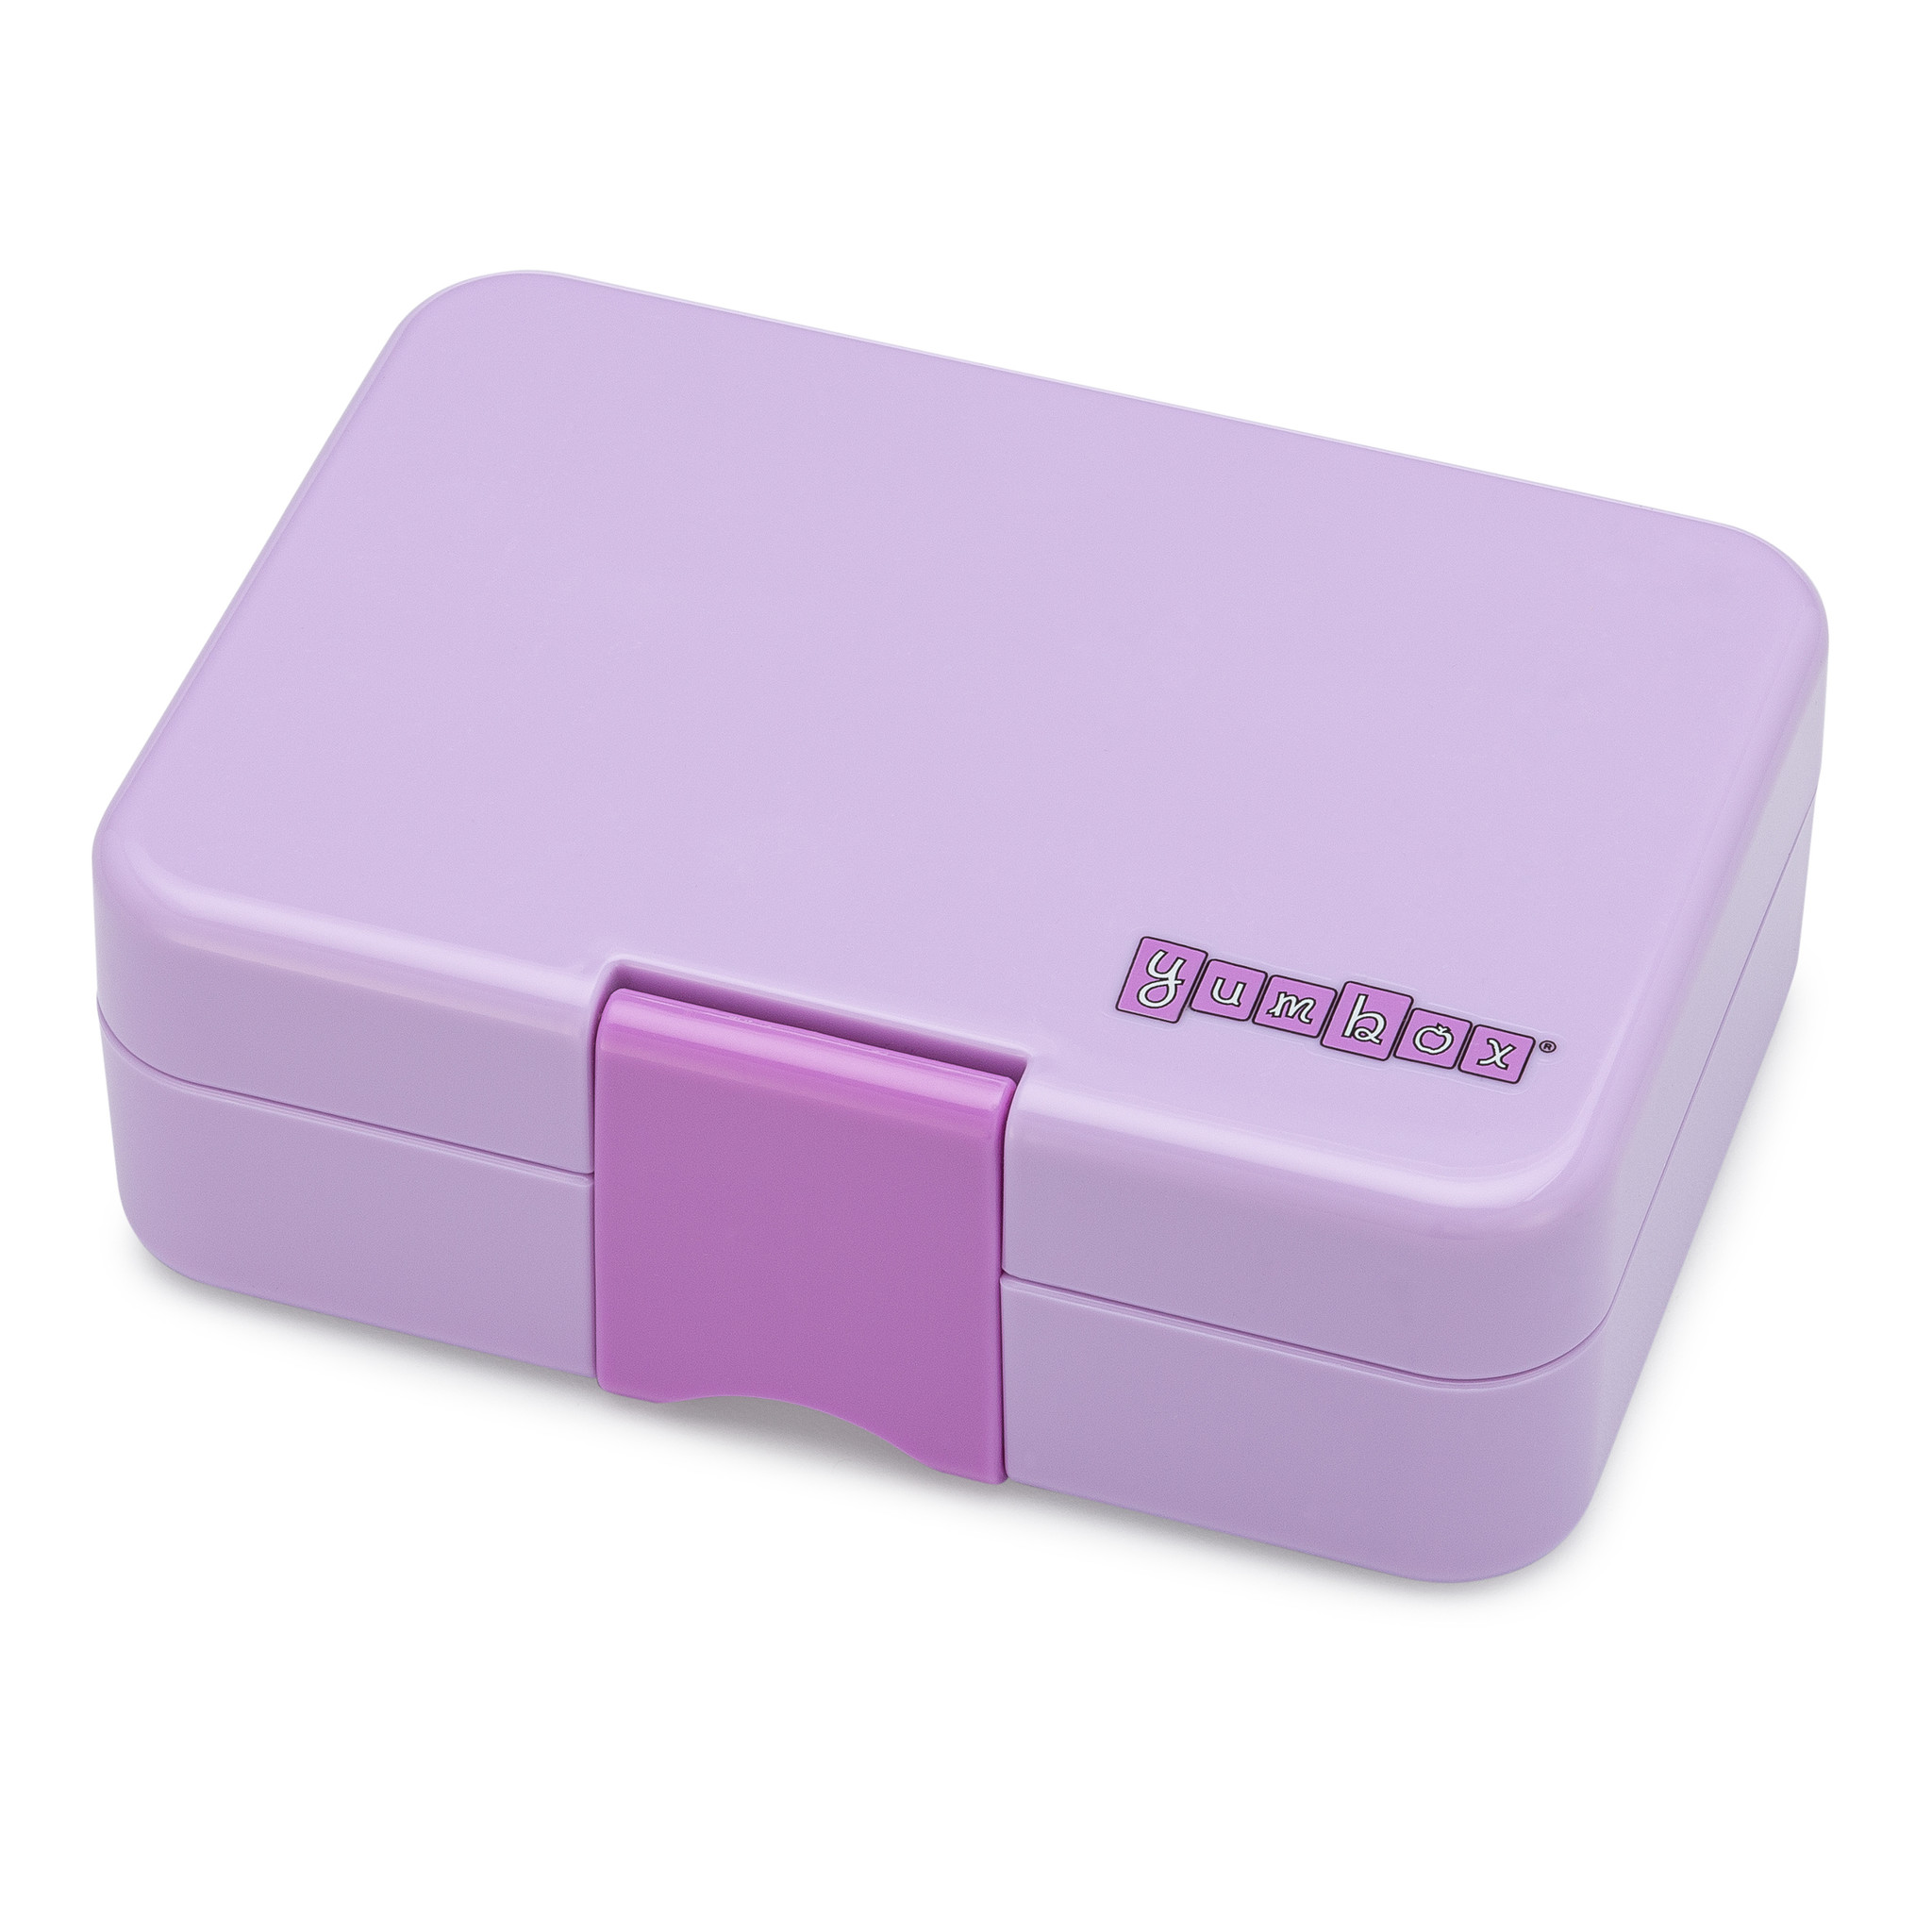 Yumbox MiniSnack 3-sections Lila purple / Toucan tray-4